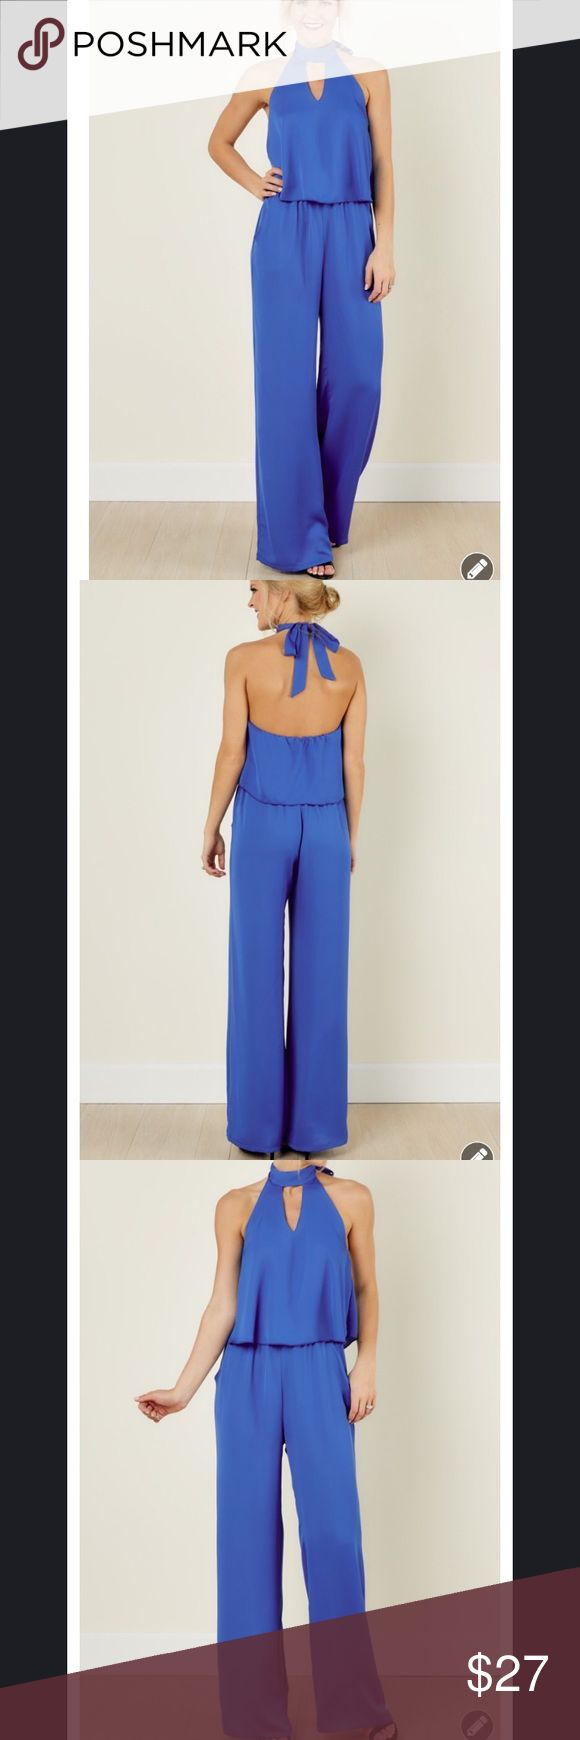 "Blue Jumpsuit NWT. Pet and smoke free home. This jumpsuit features a halter neck, elastic waistband, and a v front cut out. Length- 60.5"", bust- 38"", waist-30"" (has stretch), hips-46"", inseam- 41"" Red Dress Boutique Pants Jumpsuits & Rompers"